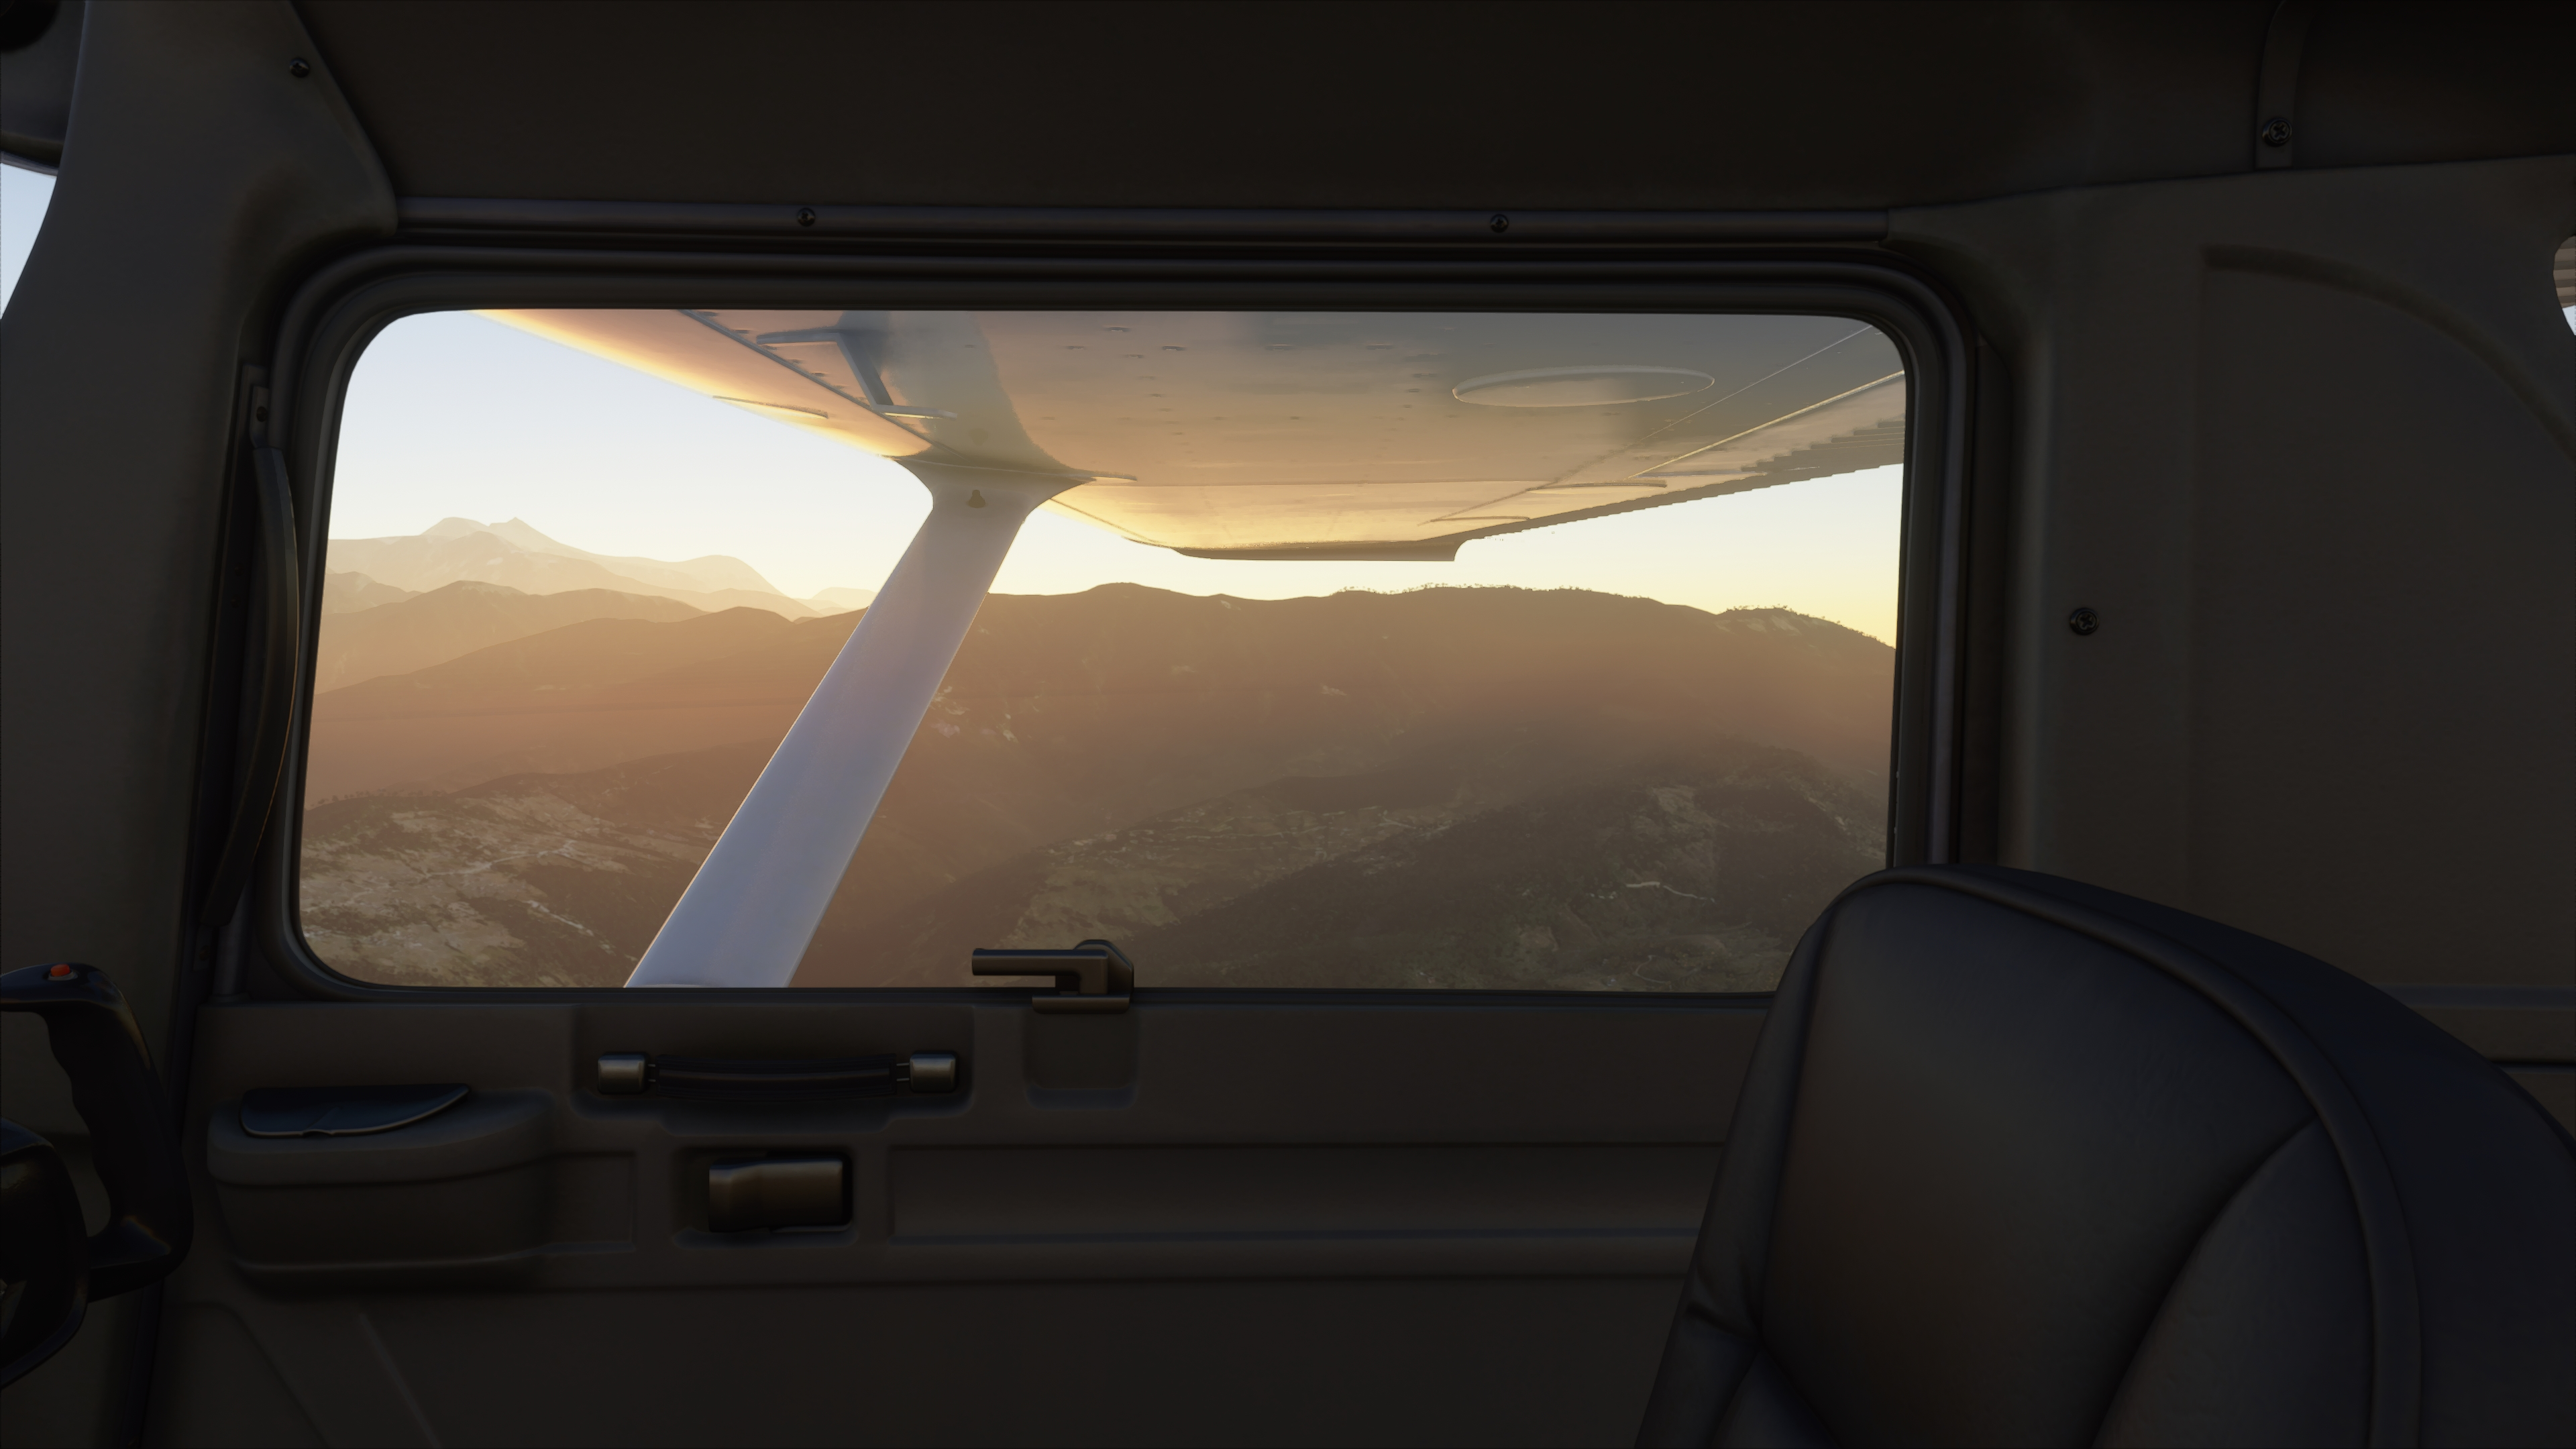 FlightSimulator_2020_08_20_18_32_26_447.jpg